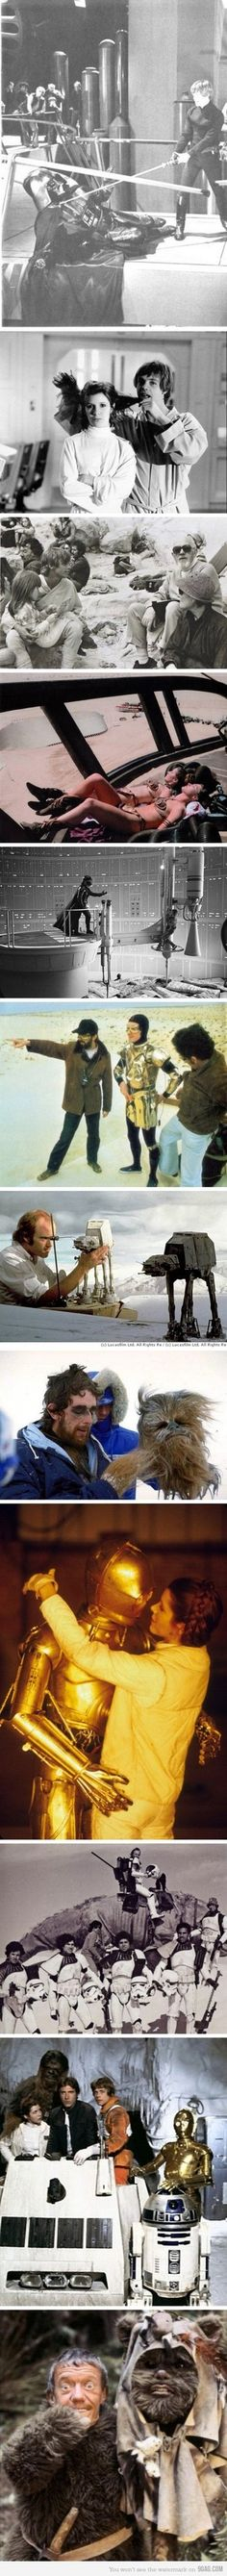 Meanwhile, on the Star Wars set...